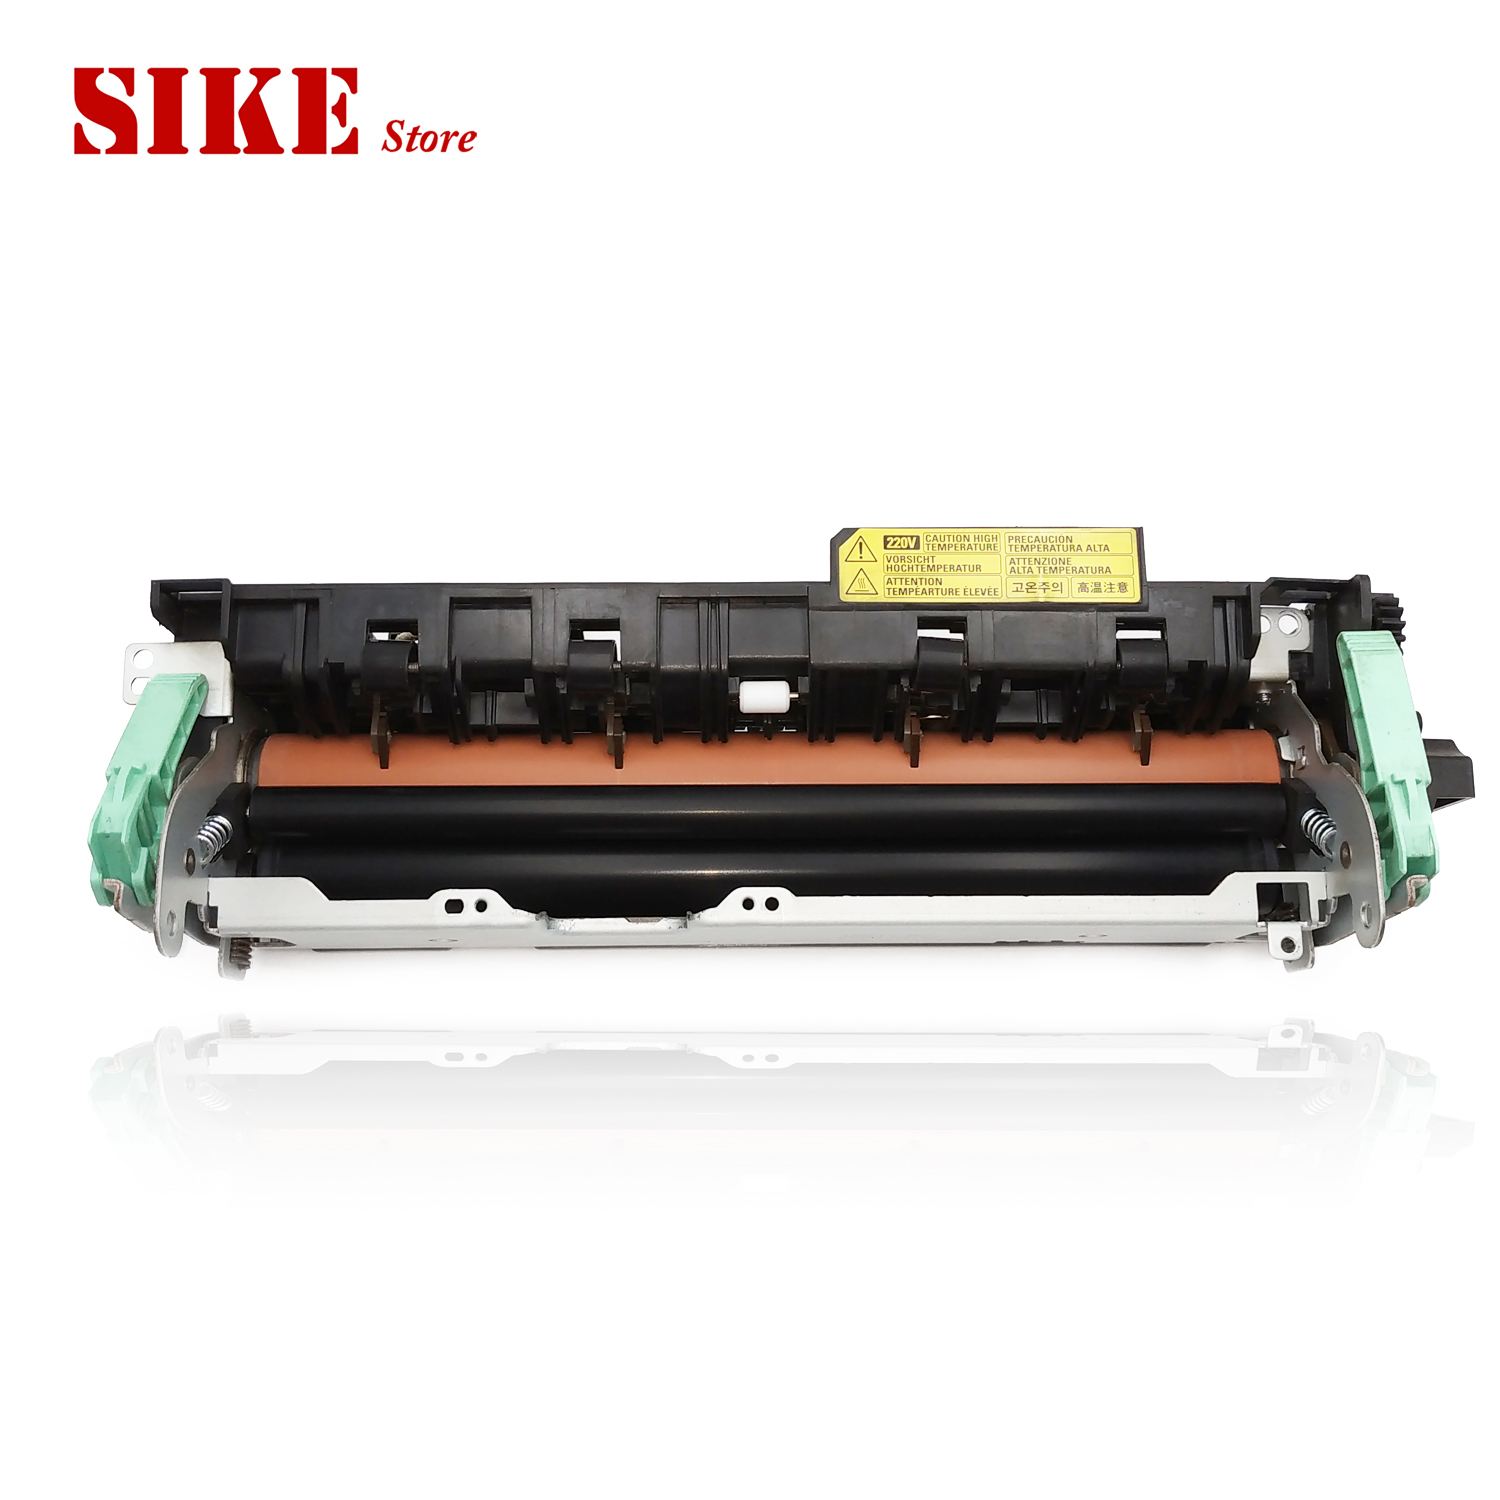 Fuser Unit Assy For Samsung <font><b>ML</b></font>-3310D <font><b>ML</b></font>-3310ND <font><b>ML</b></font>-3312ND <font><b>ML</b></font>-<font><b>3310</b></font> <font><b>ML</b></font>-3312 <font><b>ML</b></font> <font><b>3310</b></font> 3312 Fuser Assembly JC91-01023A JC91-01024A image